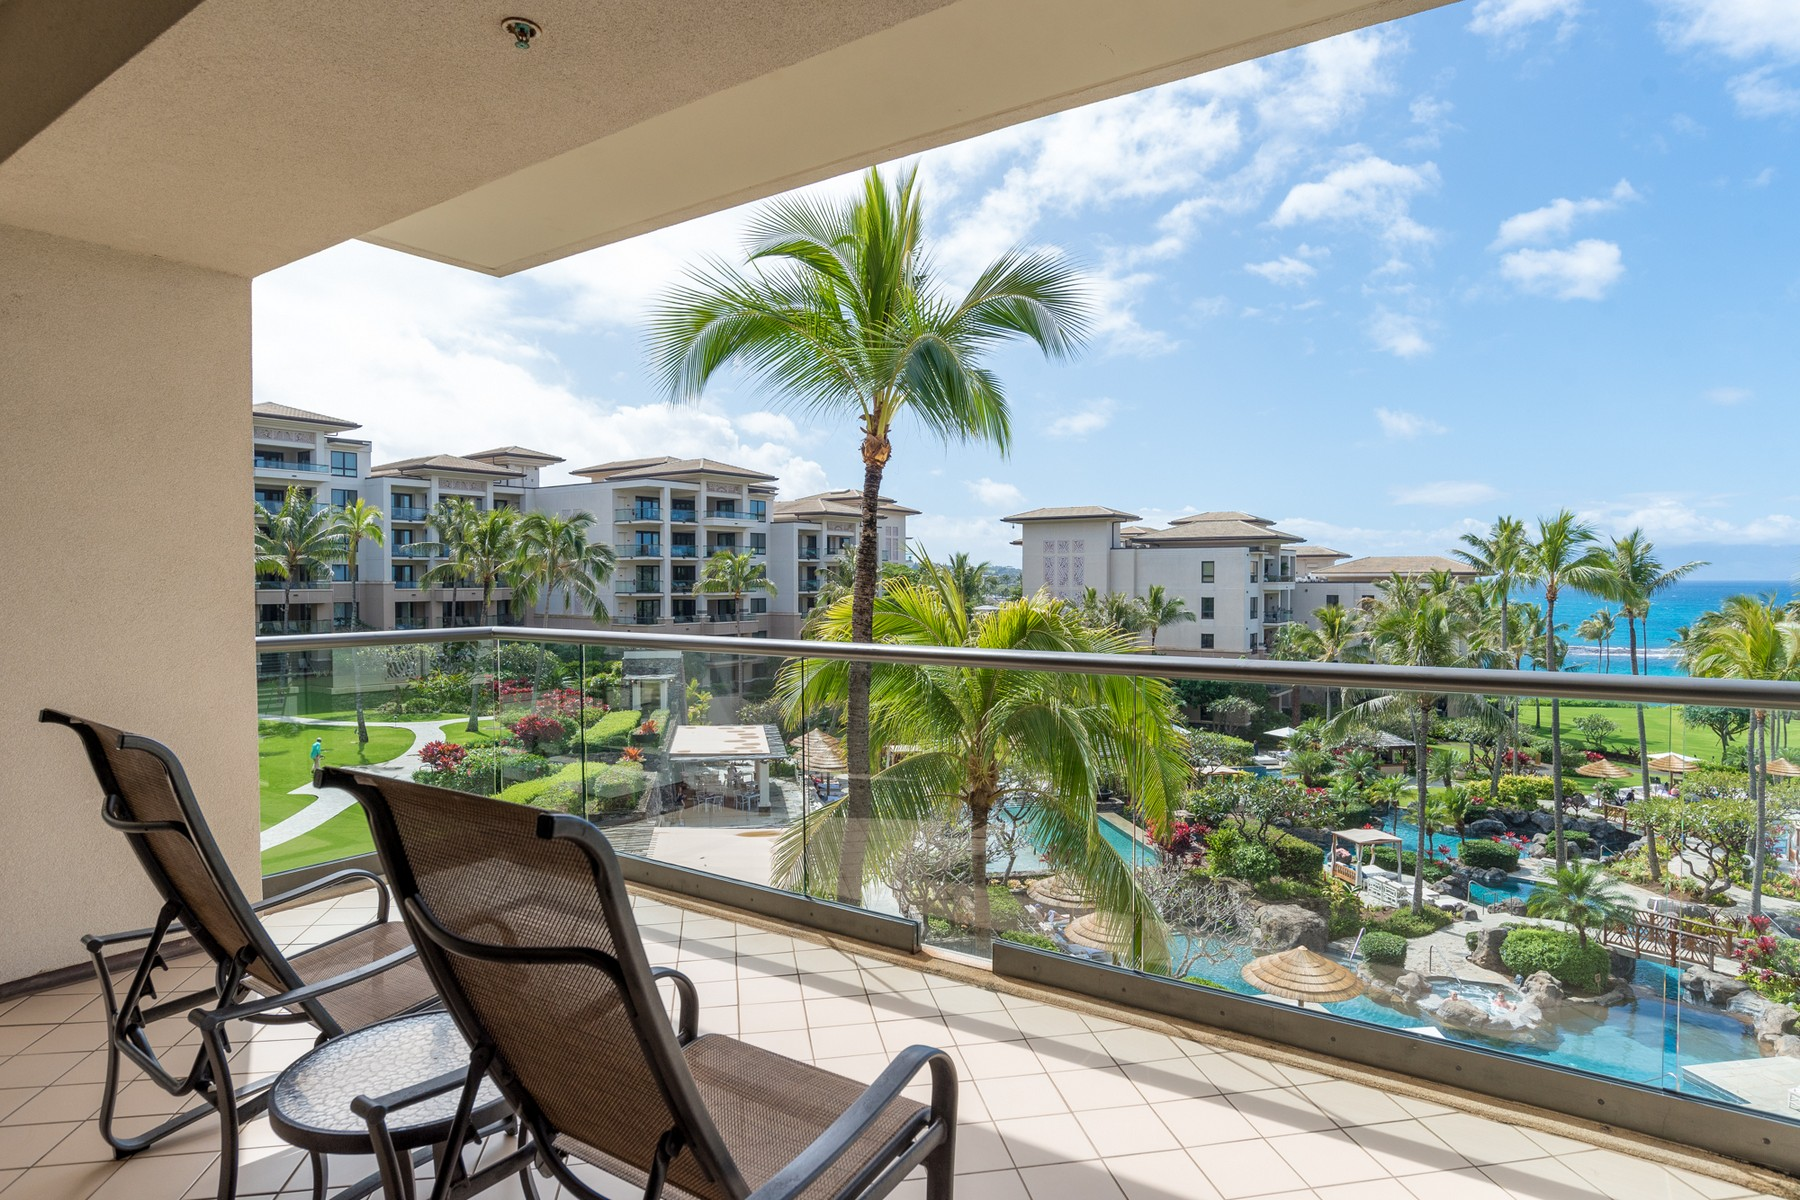 部分所有權 為 出售 在 Luxury Living Oceanfront 1 Bay Drive, Residences on Kapalua Bay 4402, Kapalua, 夏威夷, 96761 美國